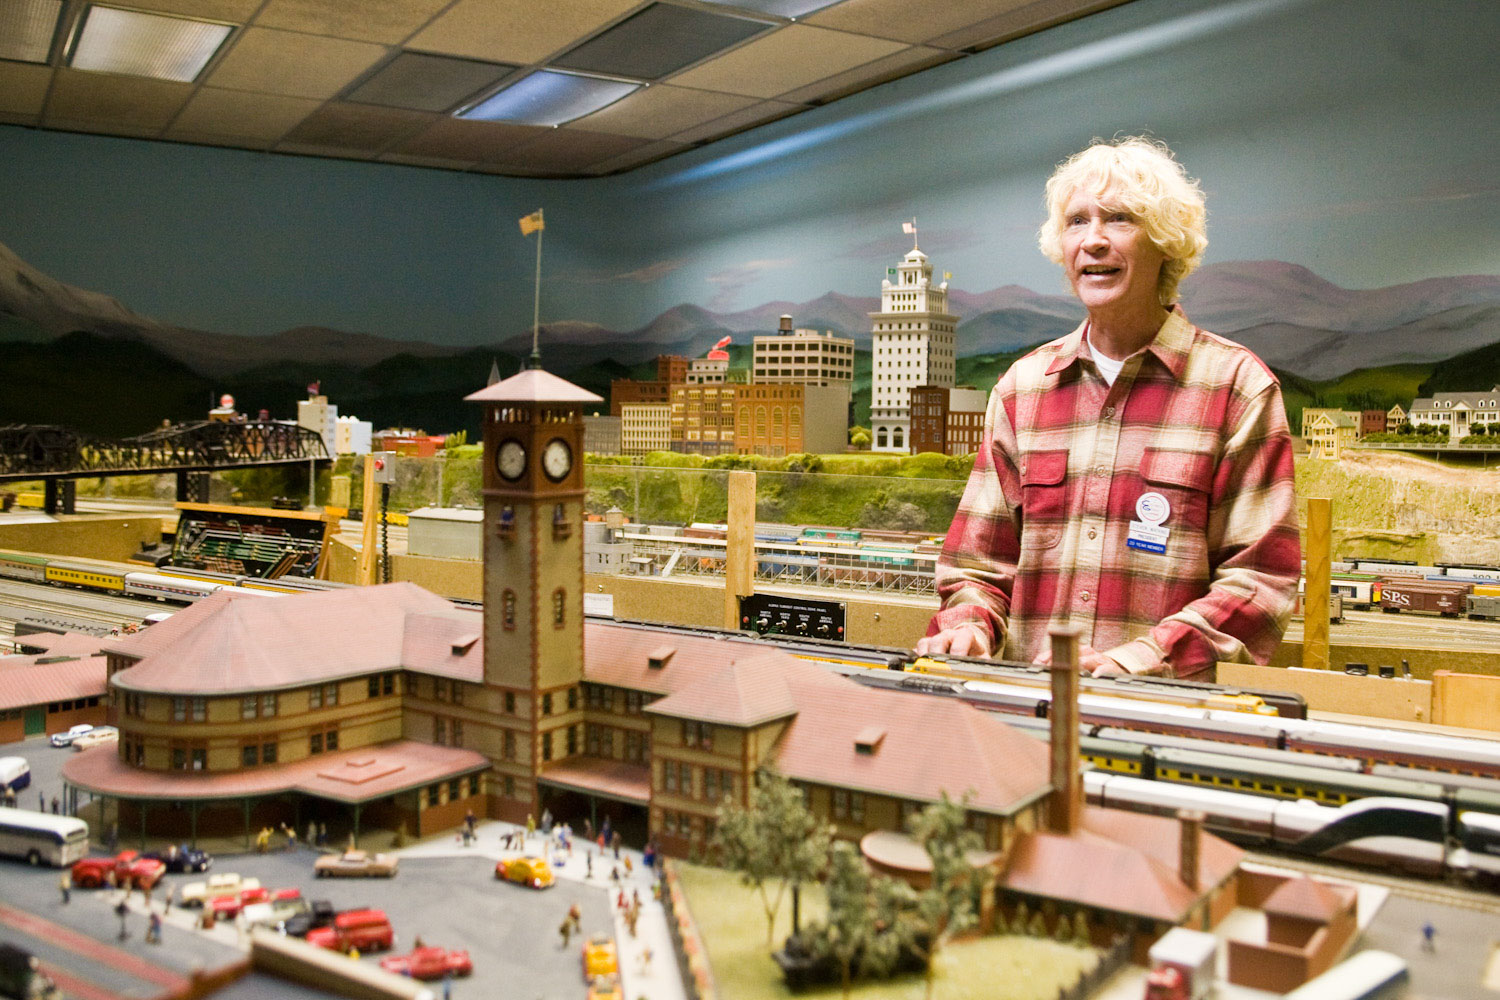 Columbia Gorge Model Railroad Club , Steven Watkins, in front of model trains